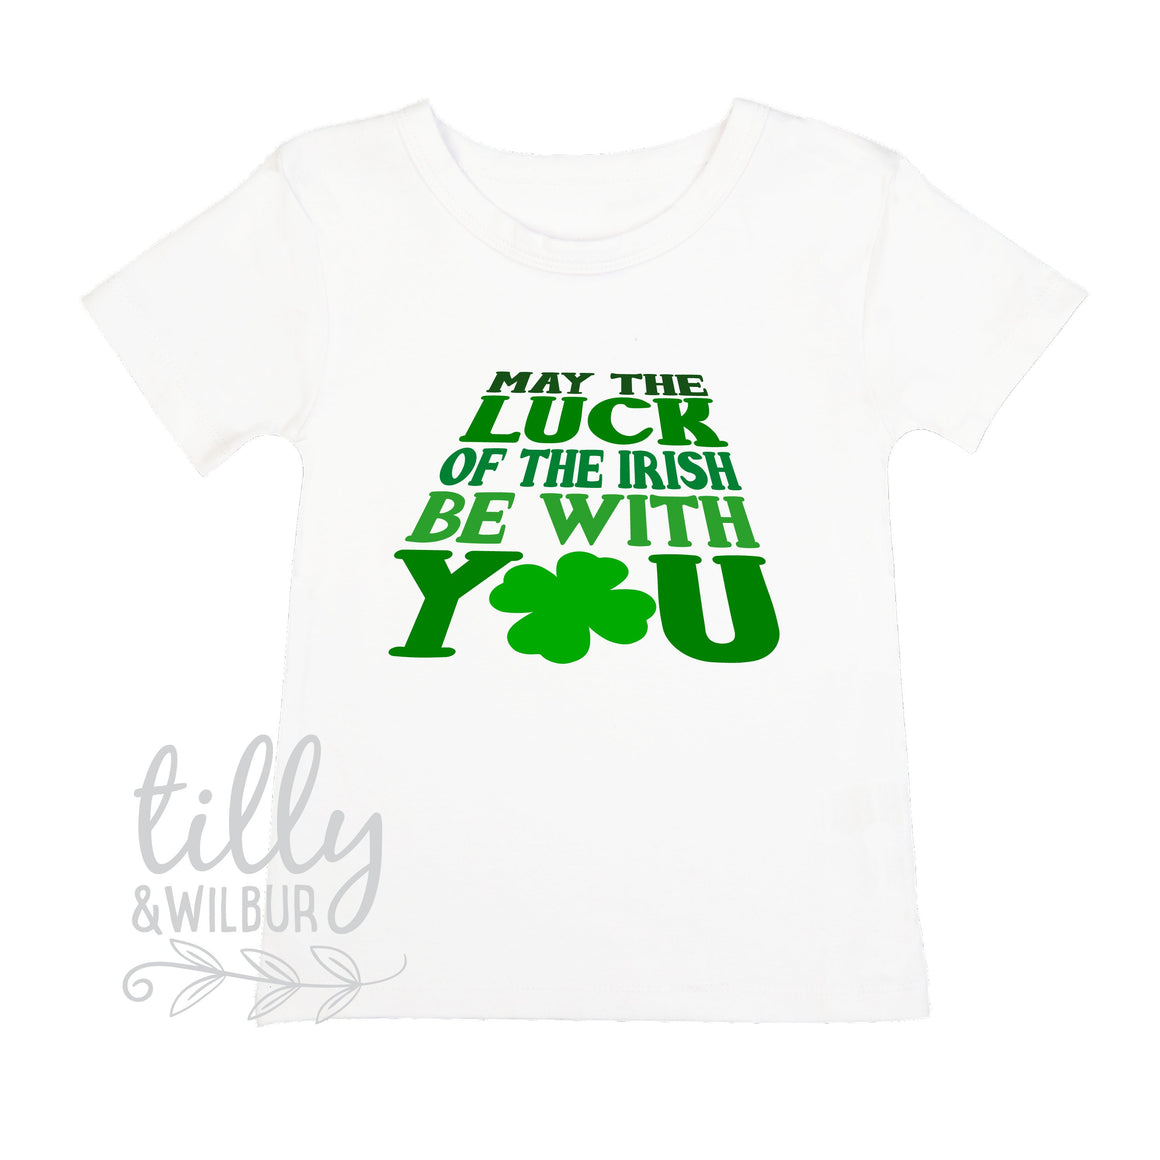 May The Luck Of The Irish Be With You Boy's T-Shirt, St Patrick's Day Shirt, Happy St Paddy's Day, Ireland, Celtic, St Patrick, Paddy, Boy's